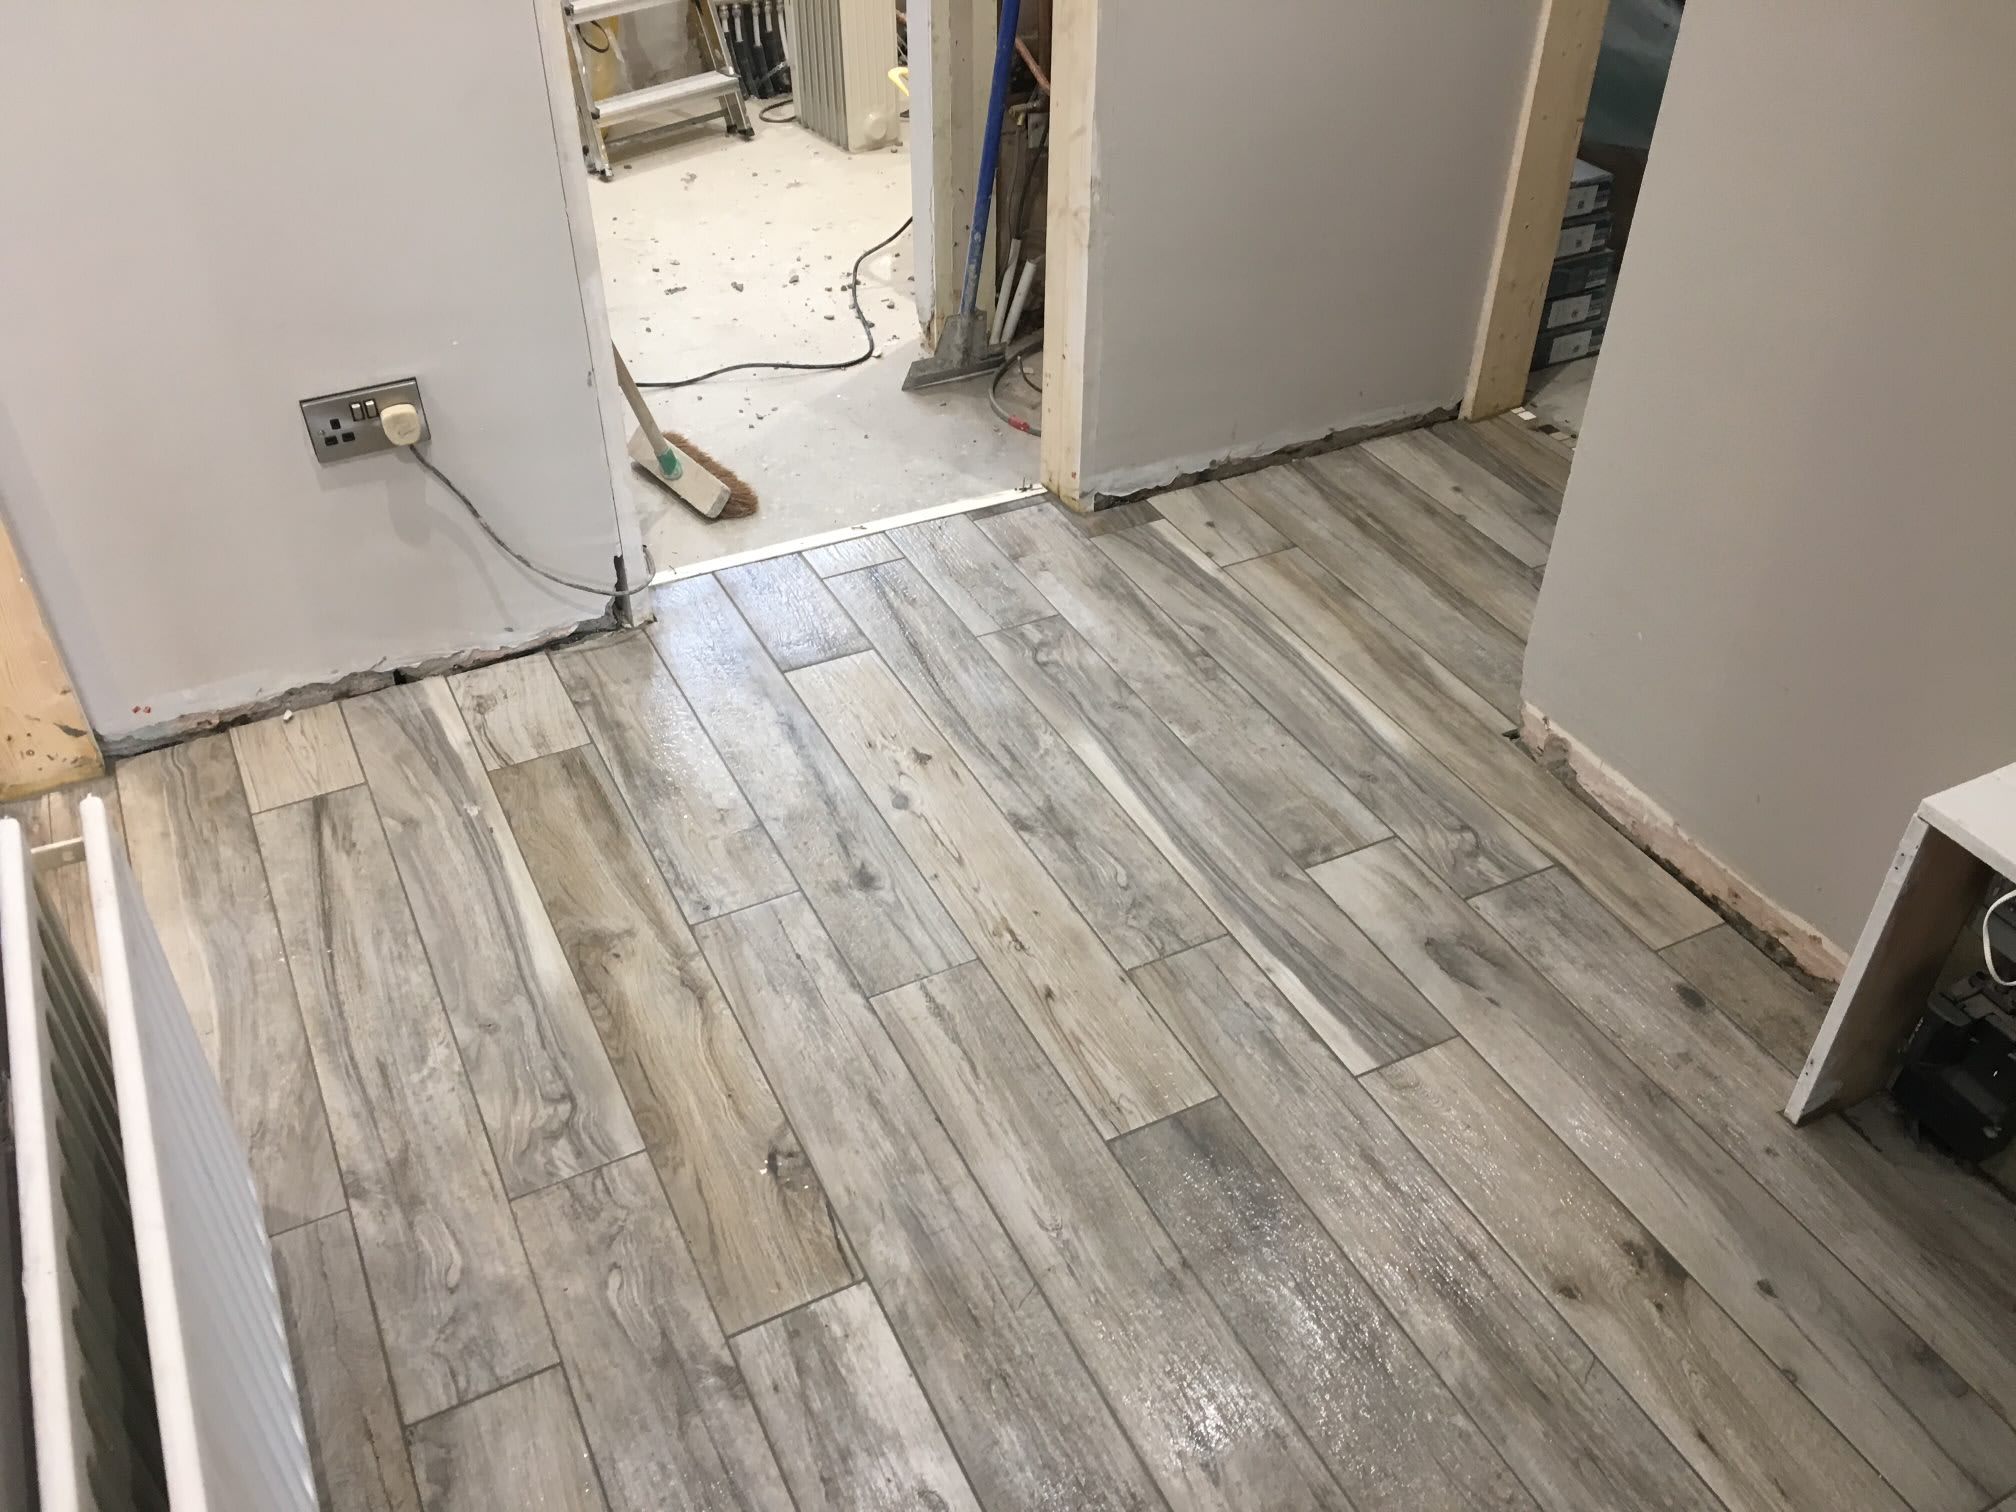 Ceramic Tiling Tools Flooring Services In Newry Bt34 3bw 192